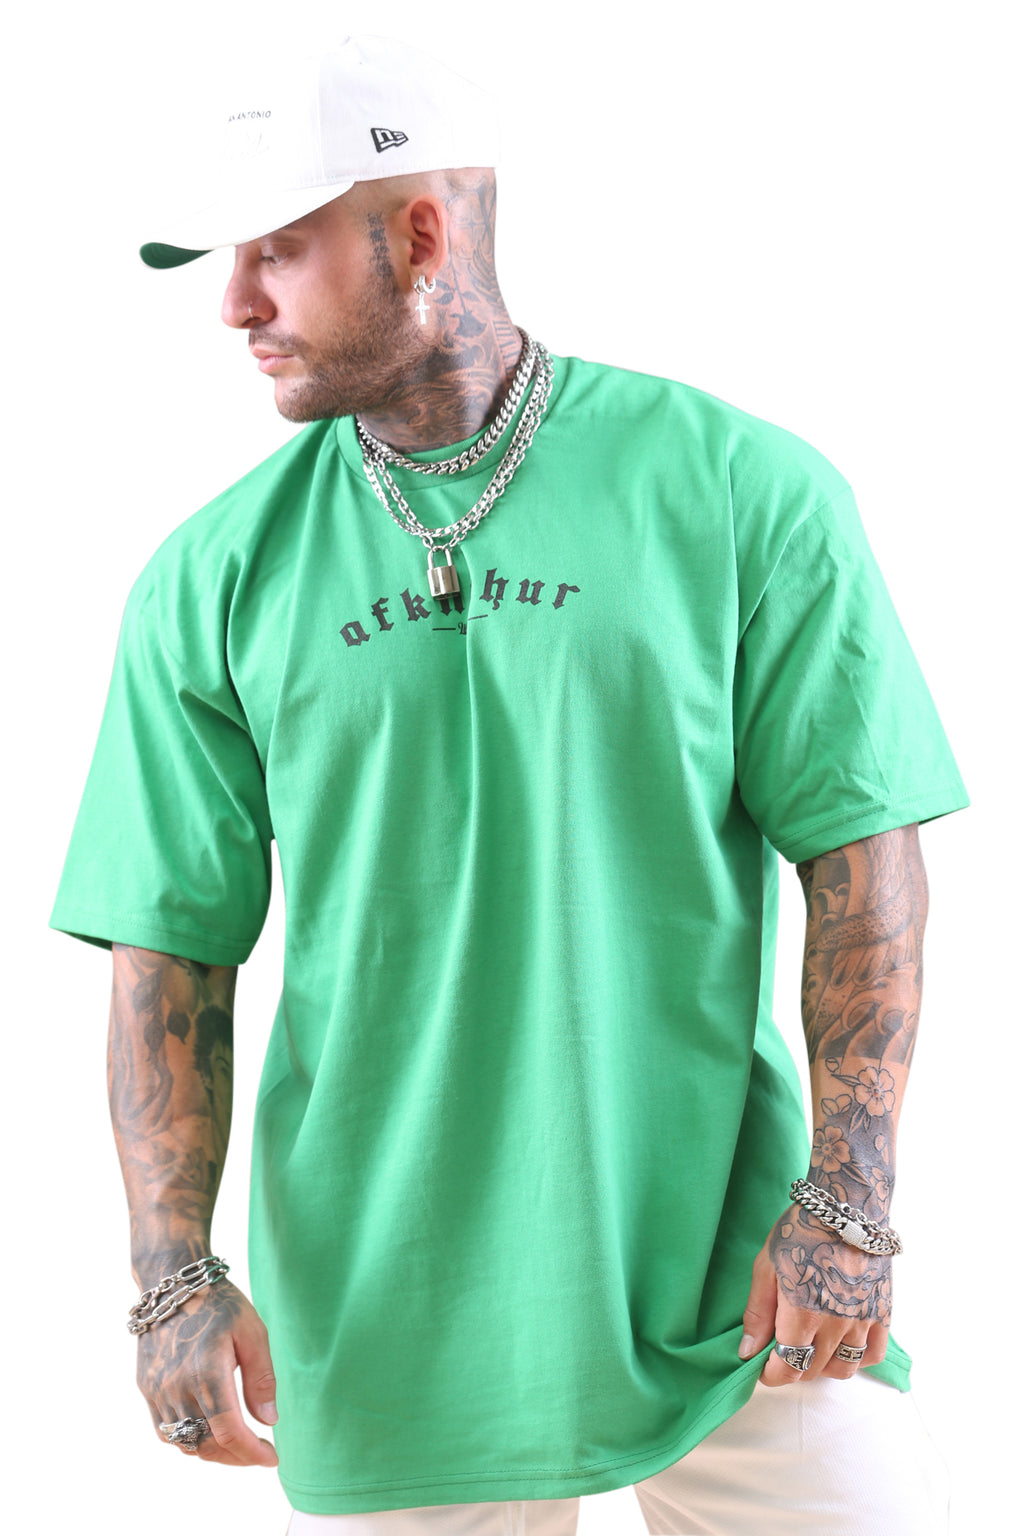 AFKNCHUR Lifestyle Tee Kelly Green Angle